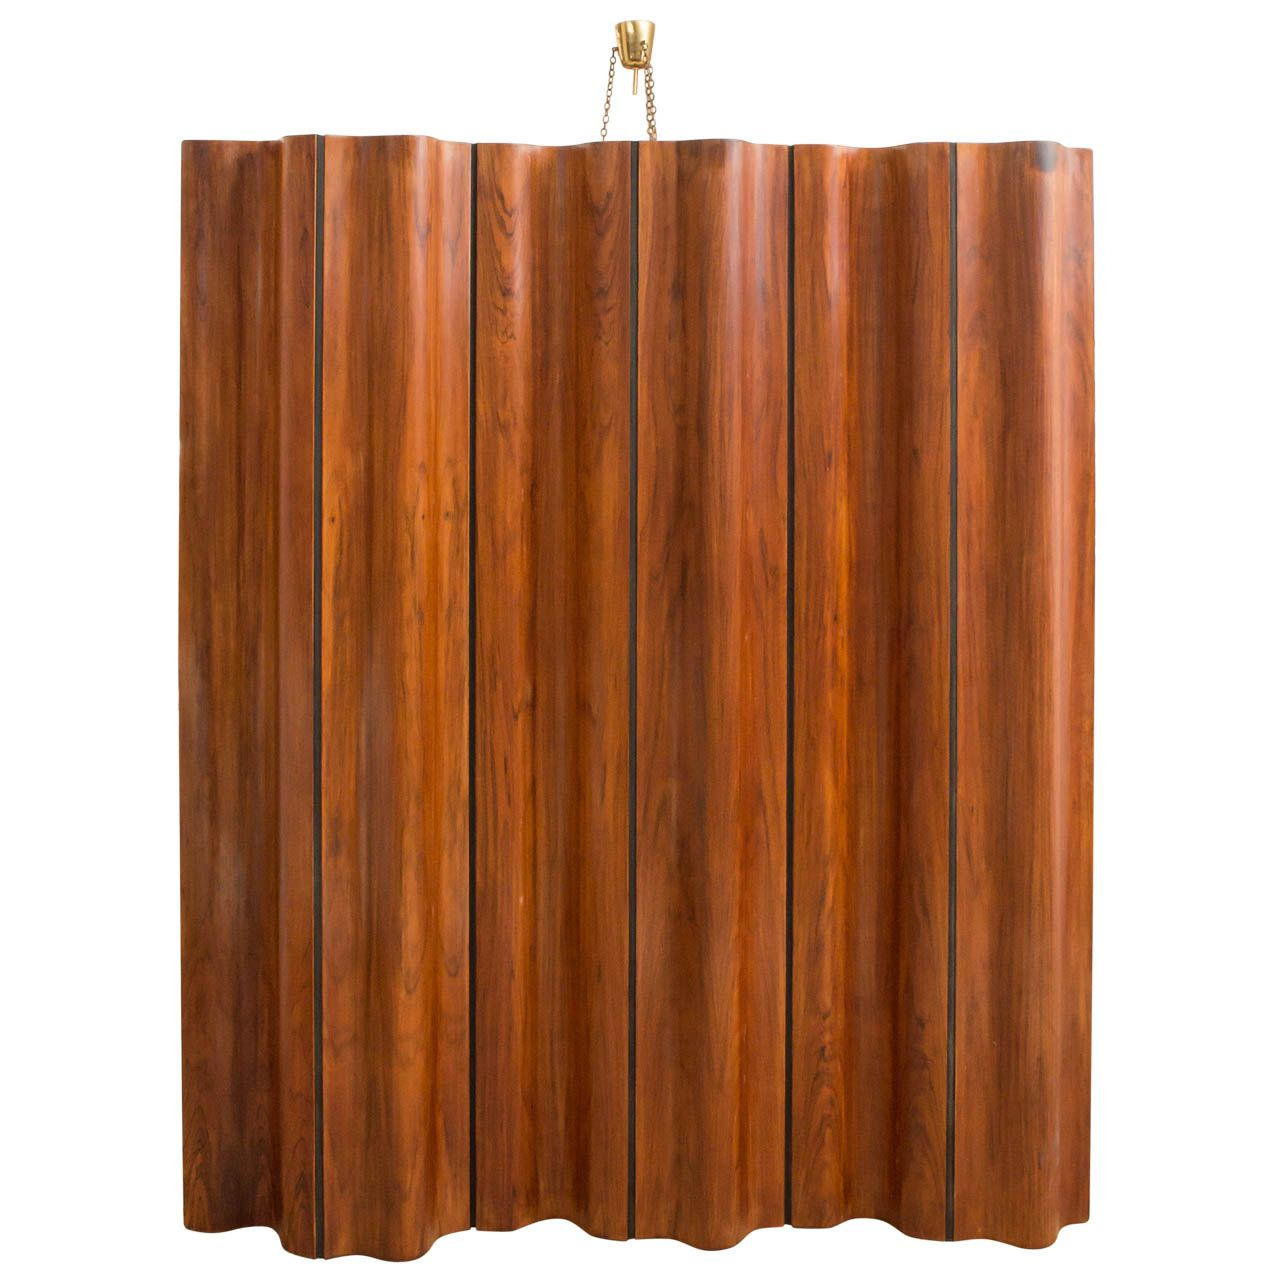 Herman Miller, Charles and Ray Eames - Room Divider   From a unique collection of antique and modern screens at http://www.1stdibs.com/furniture/more-furniture-collectibles/screens/